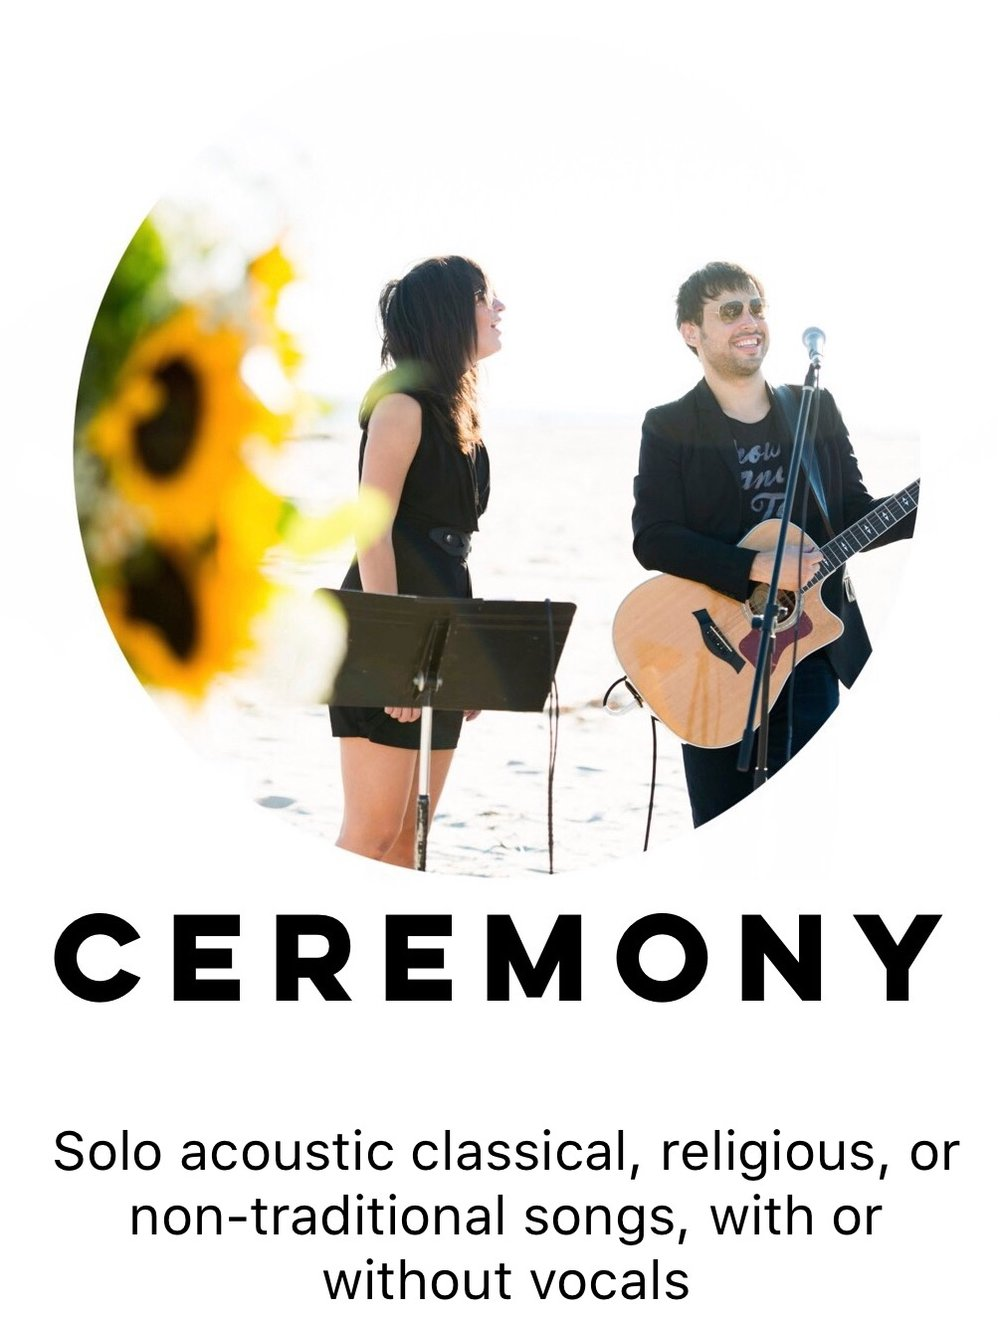 CEREMONY Solo acoustic classical, religious, or non-traditional songs, with or without vocals.